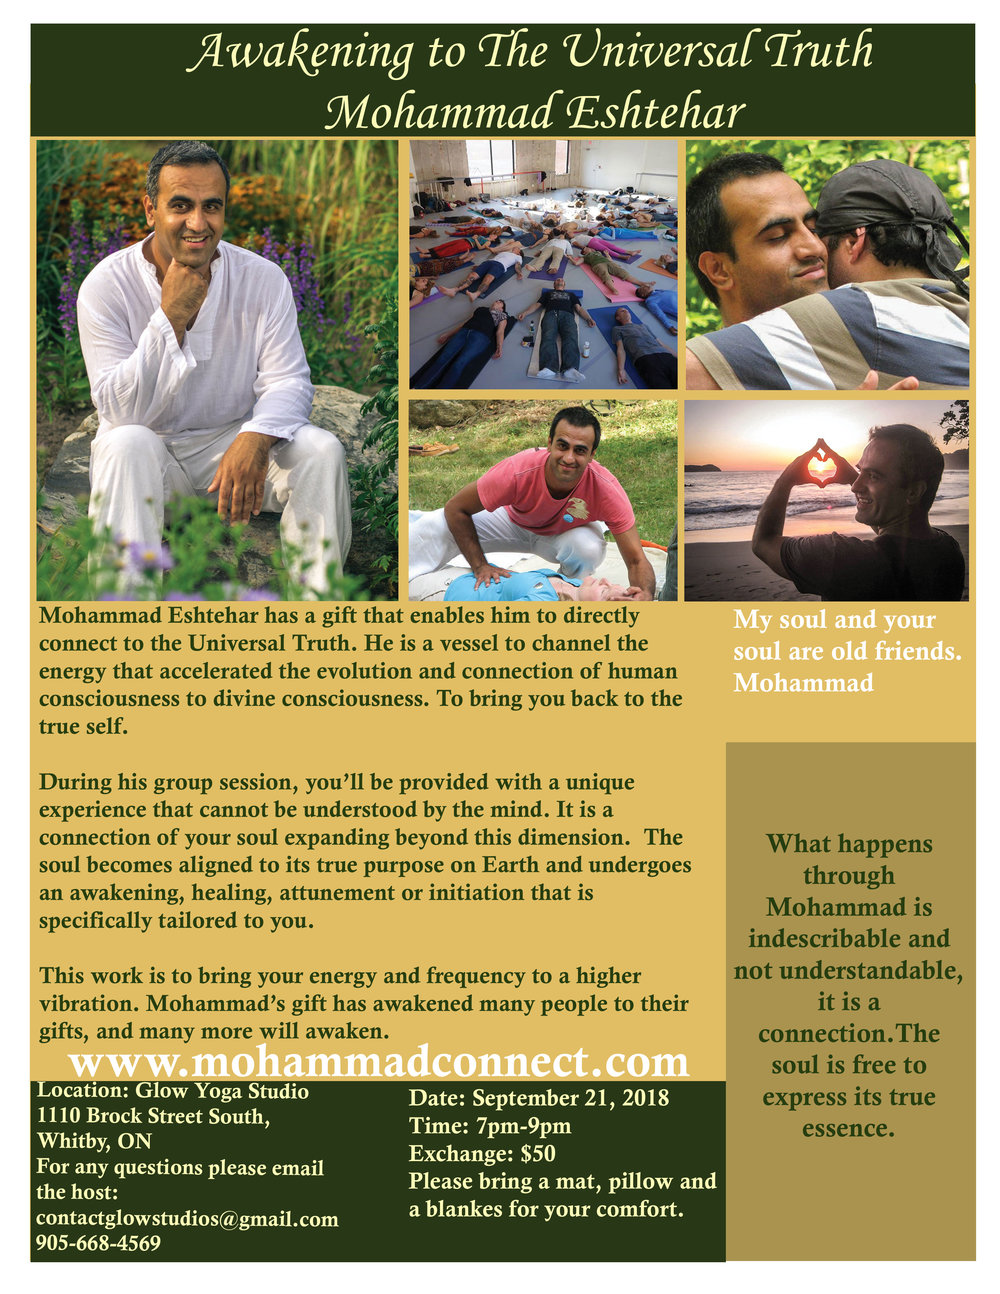 o reserve a spot for the event you can pay via Pay Pal please use the friends and family option: PayPal link:  http://paypal.me/Mohammadeshtehar   direct link to the webpage of the Glow Yoga event page:   http://glowyogastudio.ca/schedule/workshops/?options%5Bids%5D=668&options%5Bsite_id%5D=14292